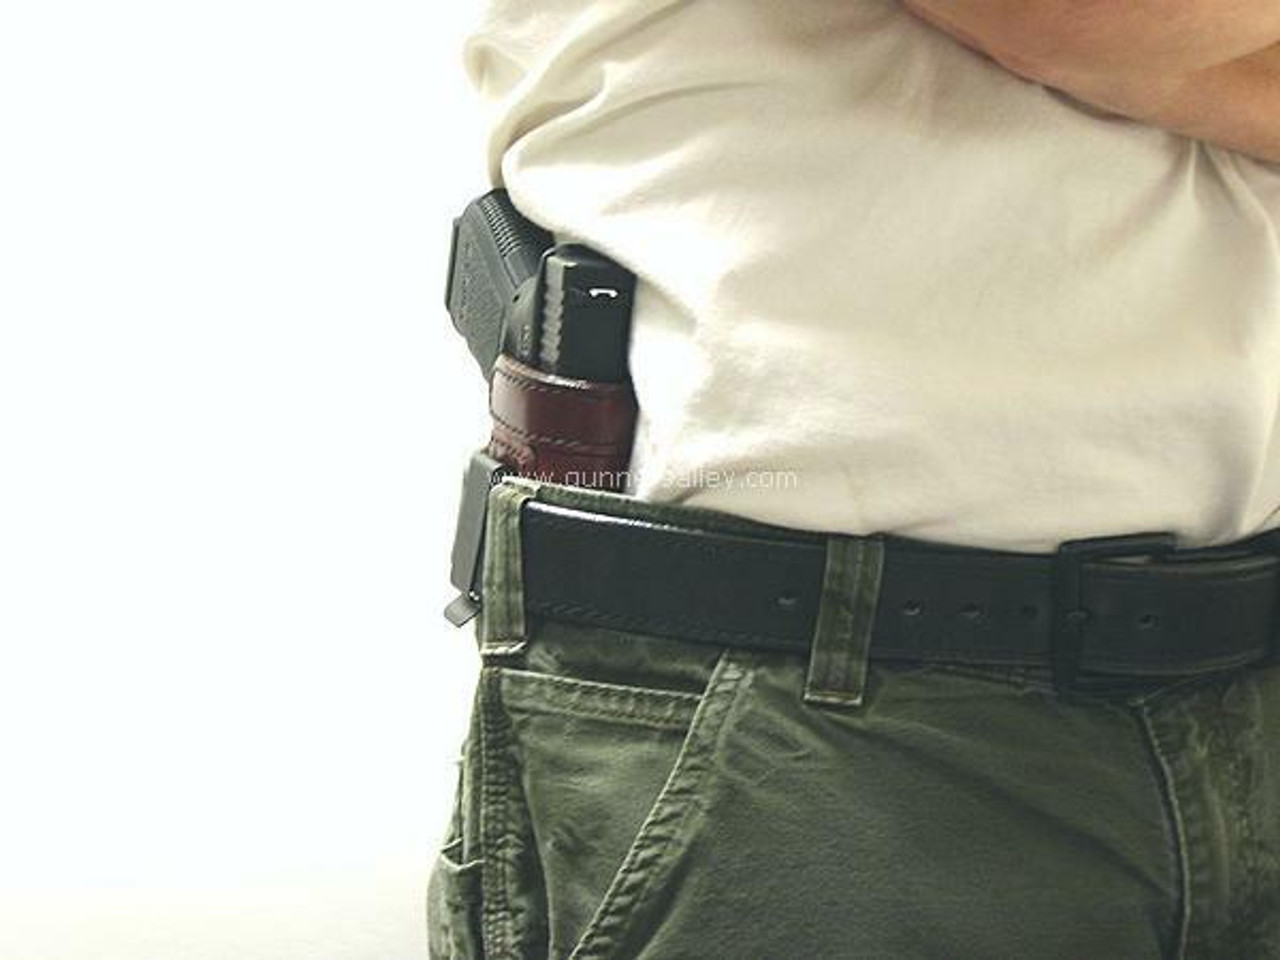 Profile View - RH Model - Shown on the Belt with a Glock 19 for Demonstration Purposes